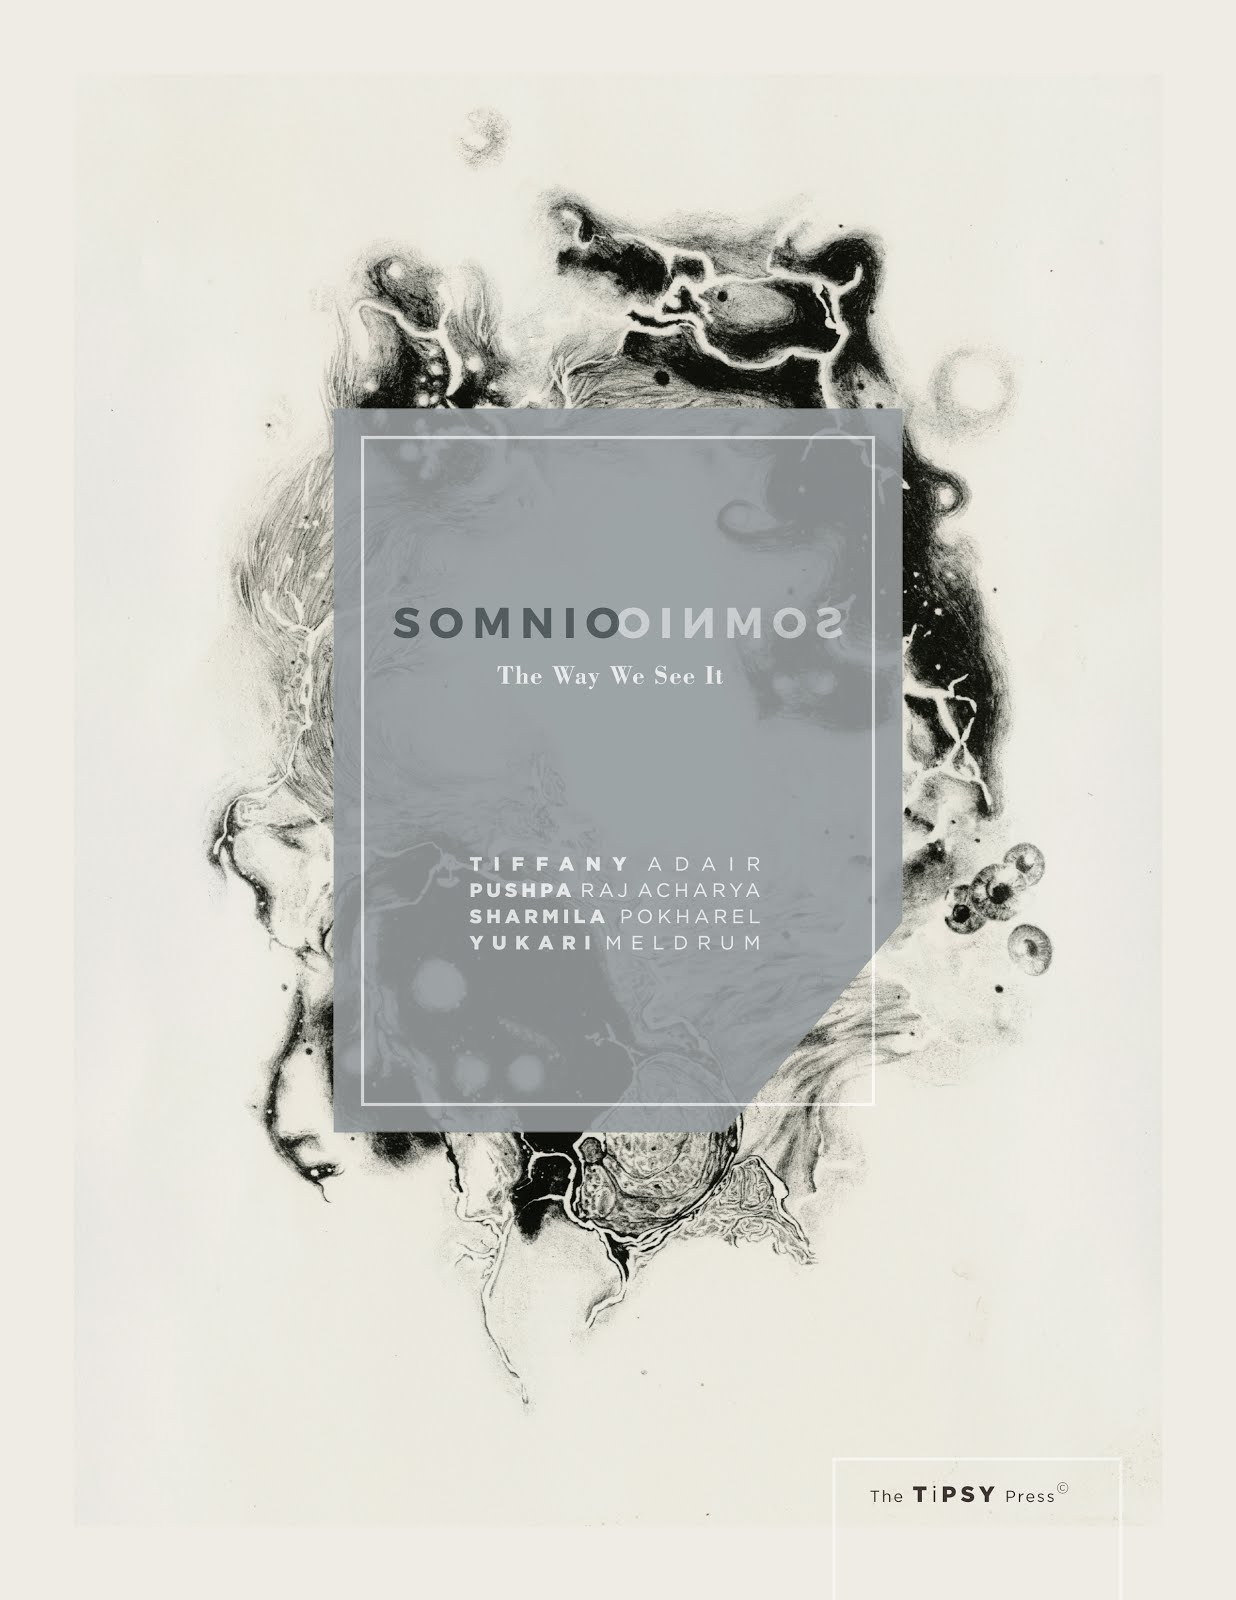 Somnio: The Way We See It